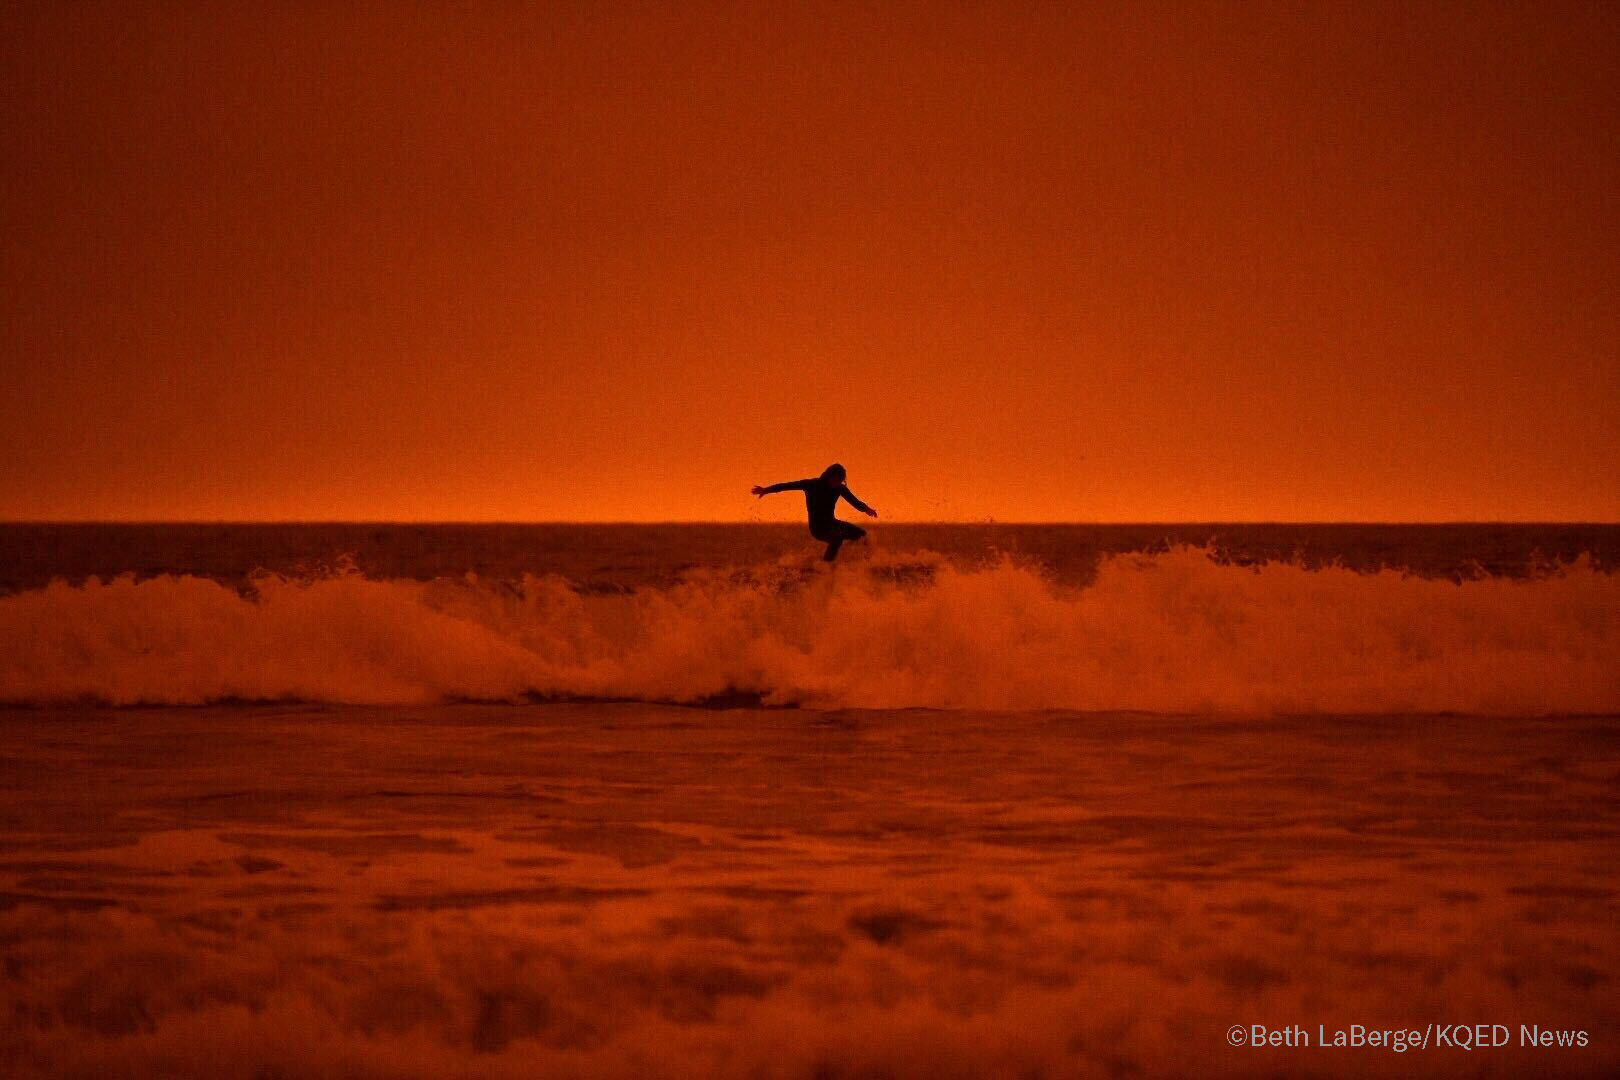 A surfer rides the waves of Ocean Beach in San Francisco under smoke-filled orange skies, on Sept. 9, 2020.